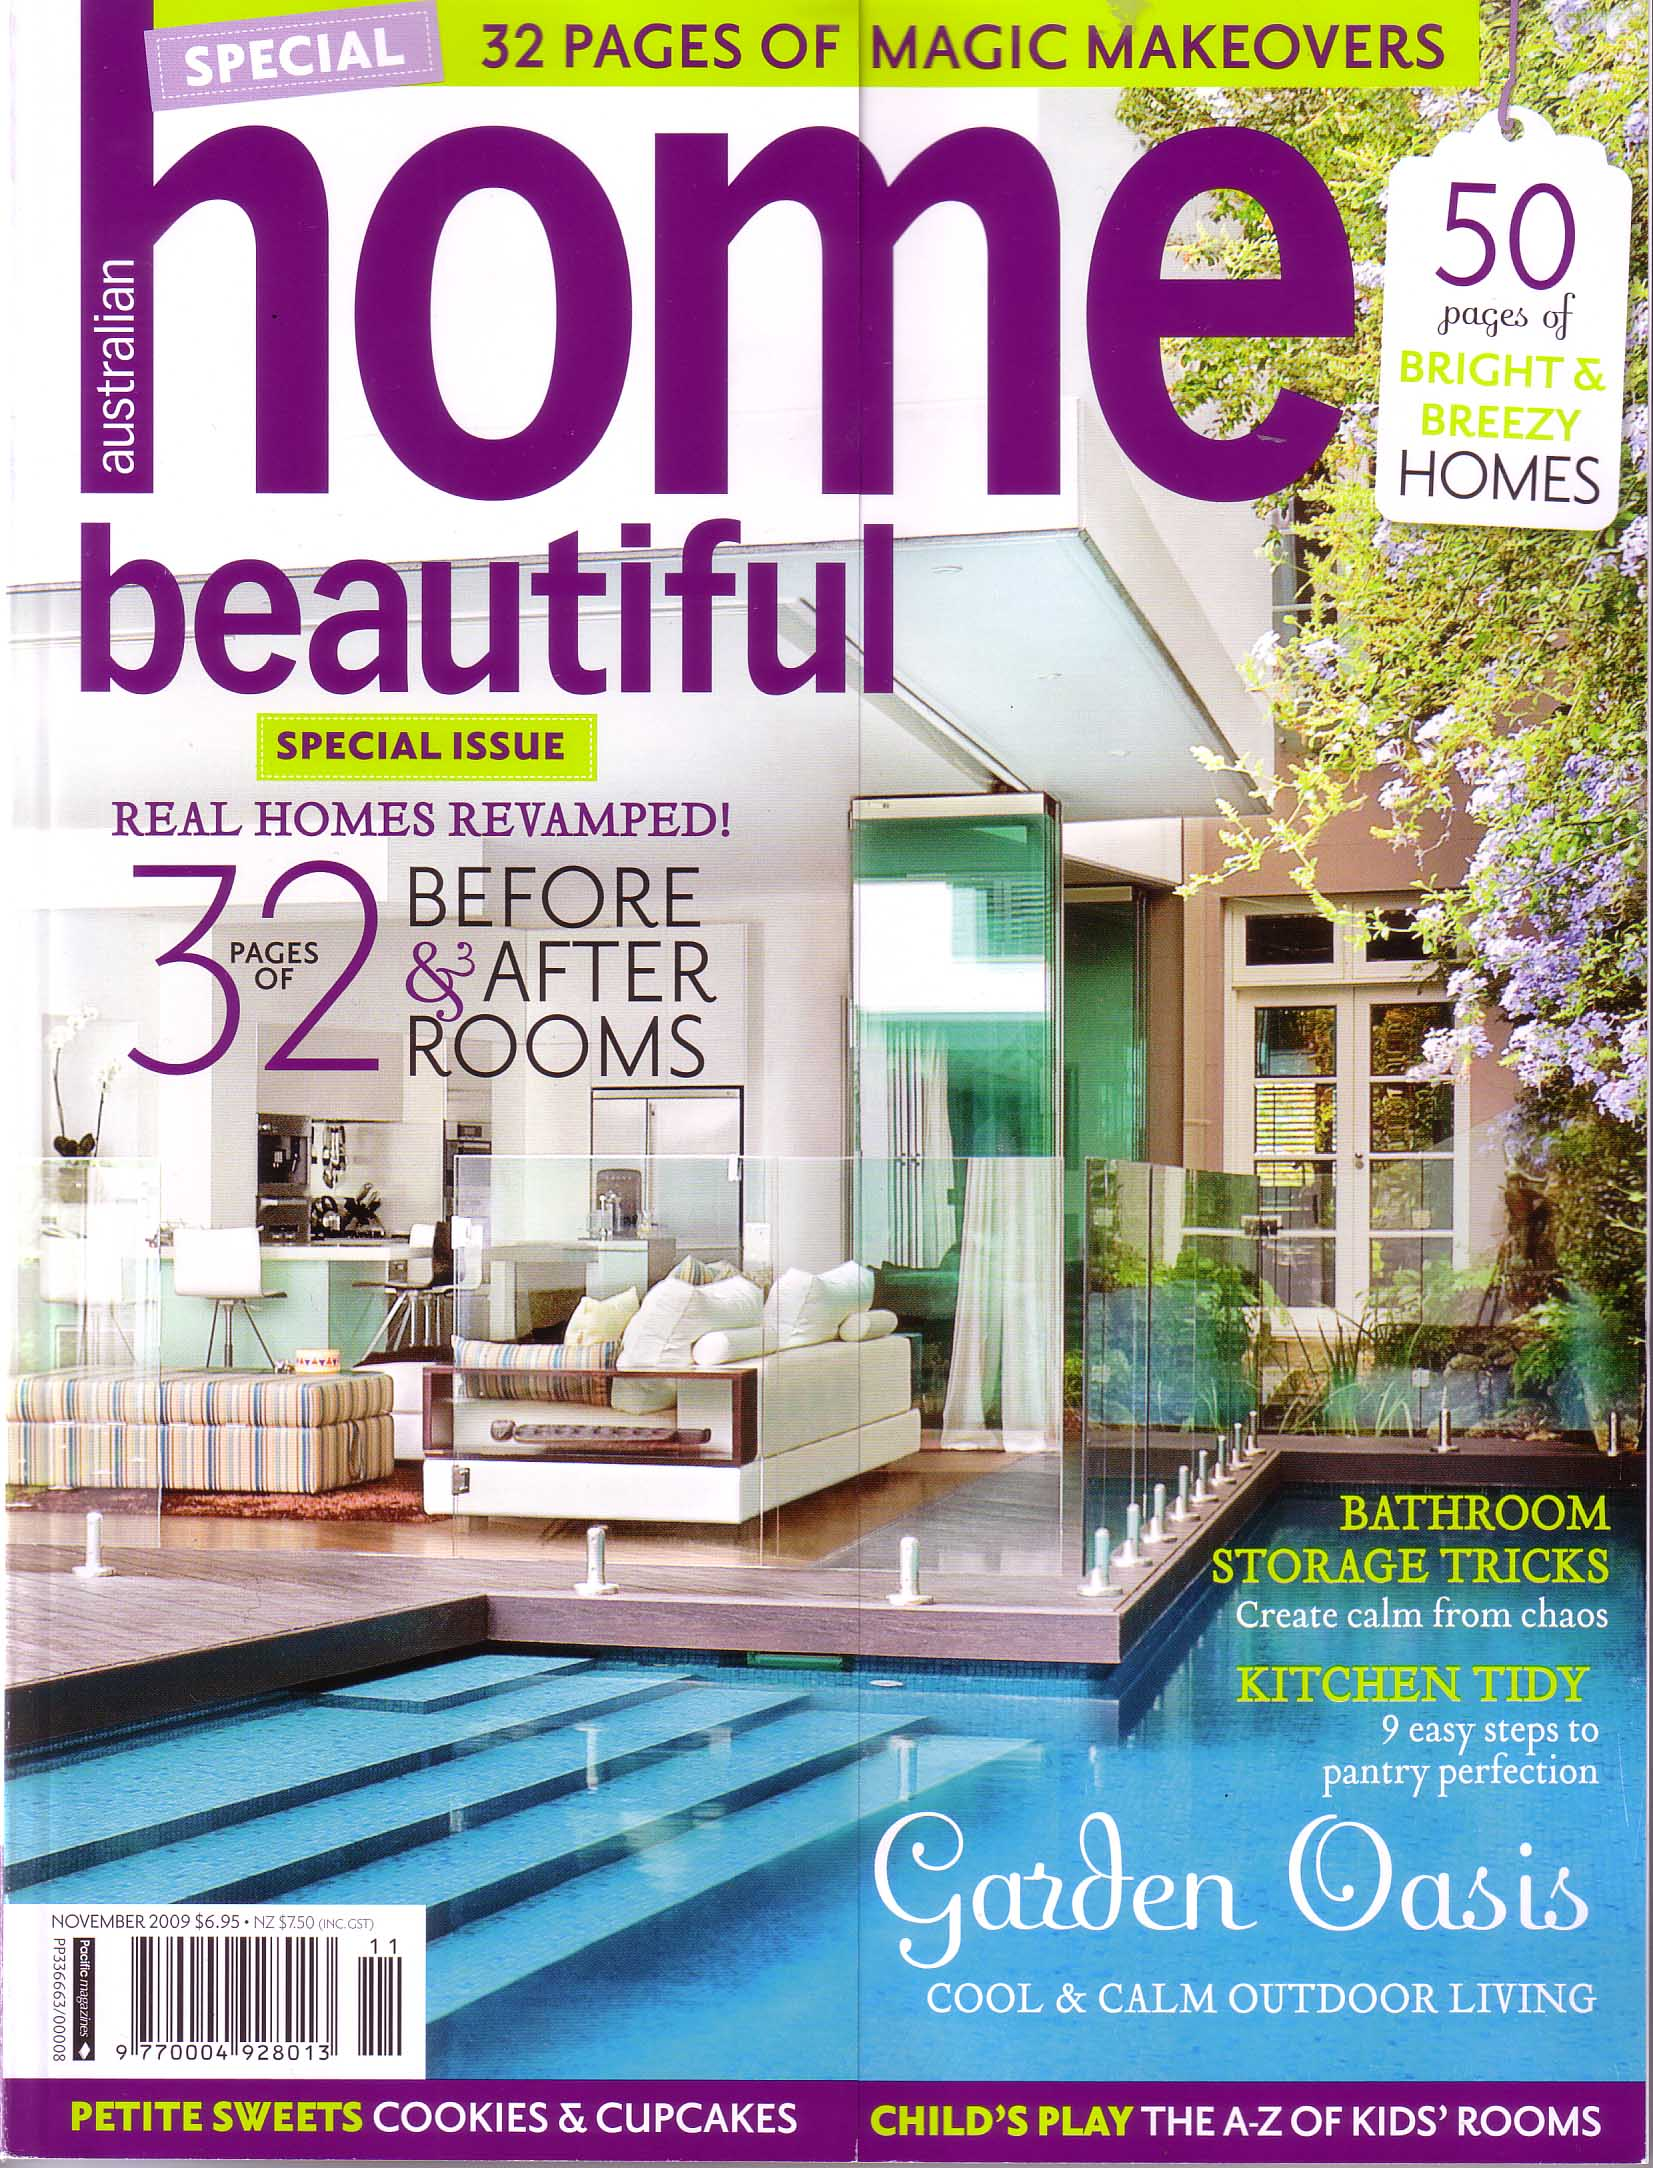 Home beautiful Nov 09 Cover. Hight res.jpg